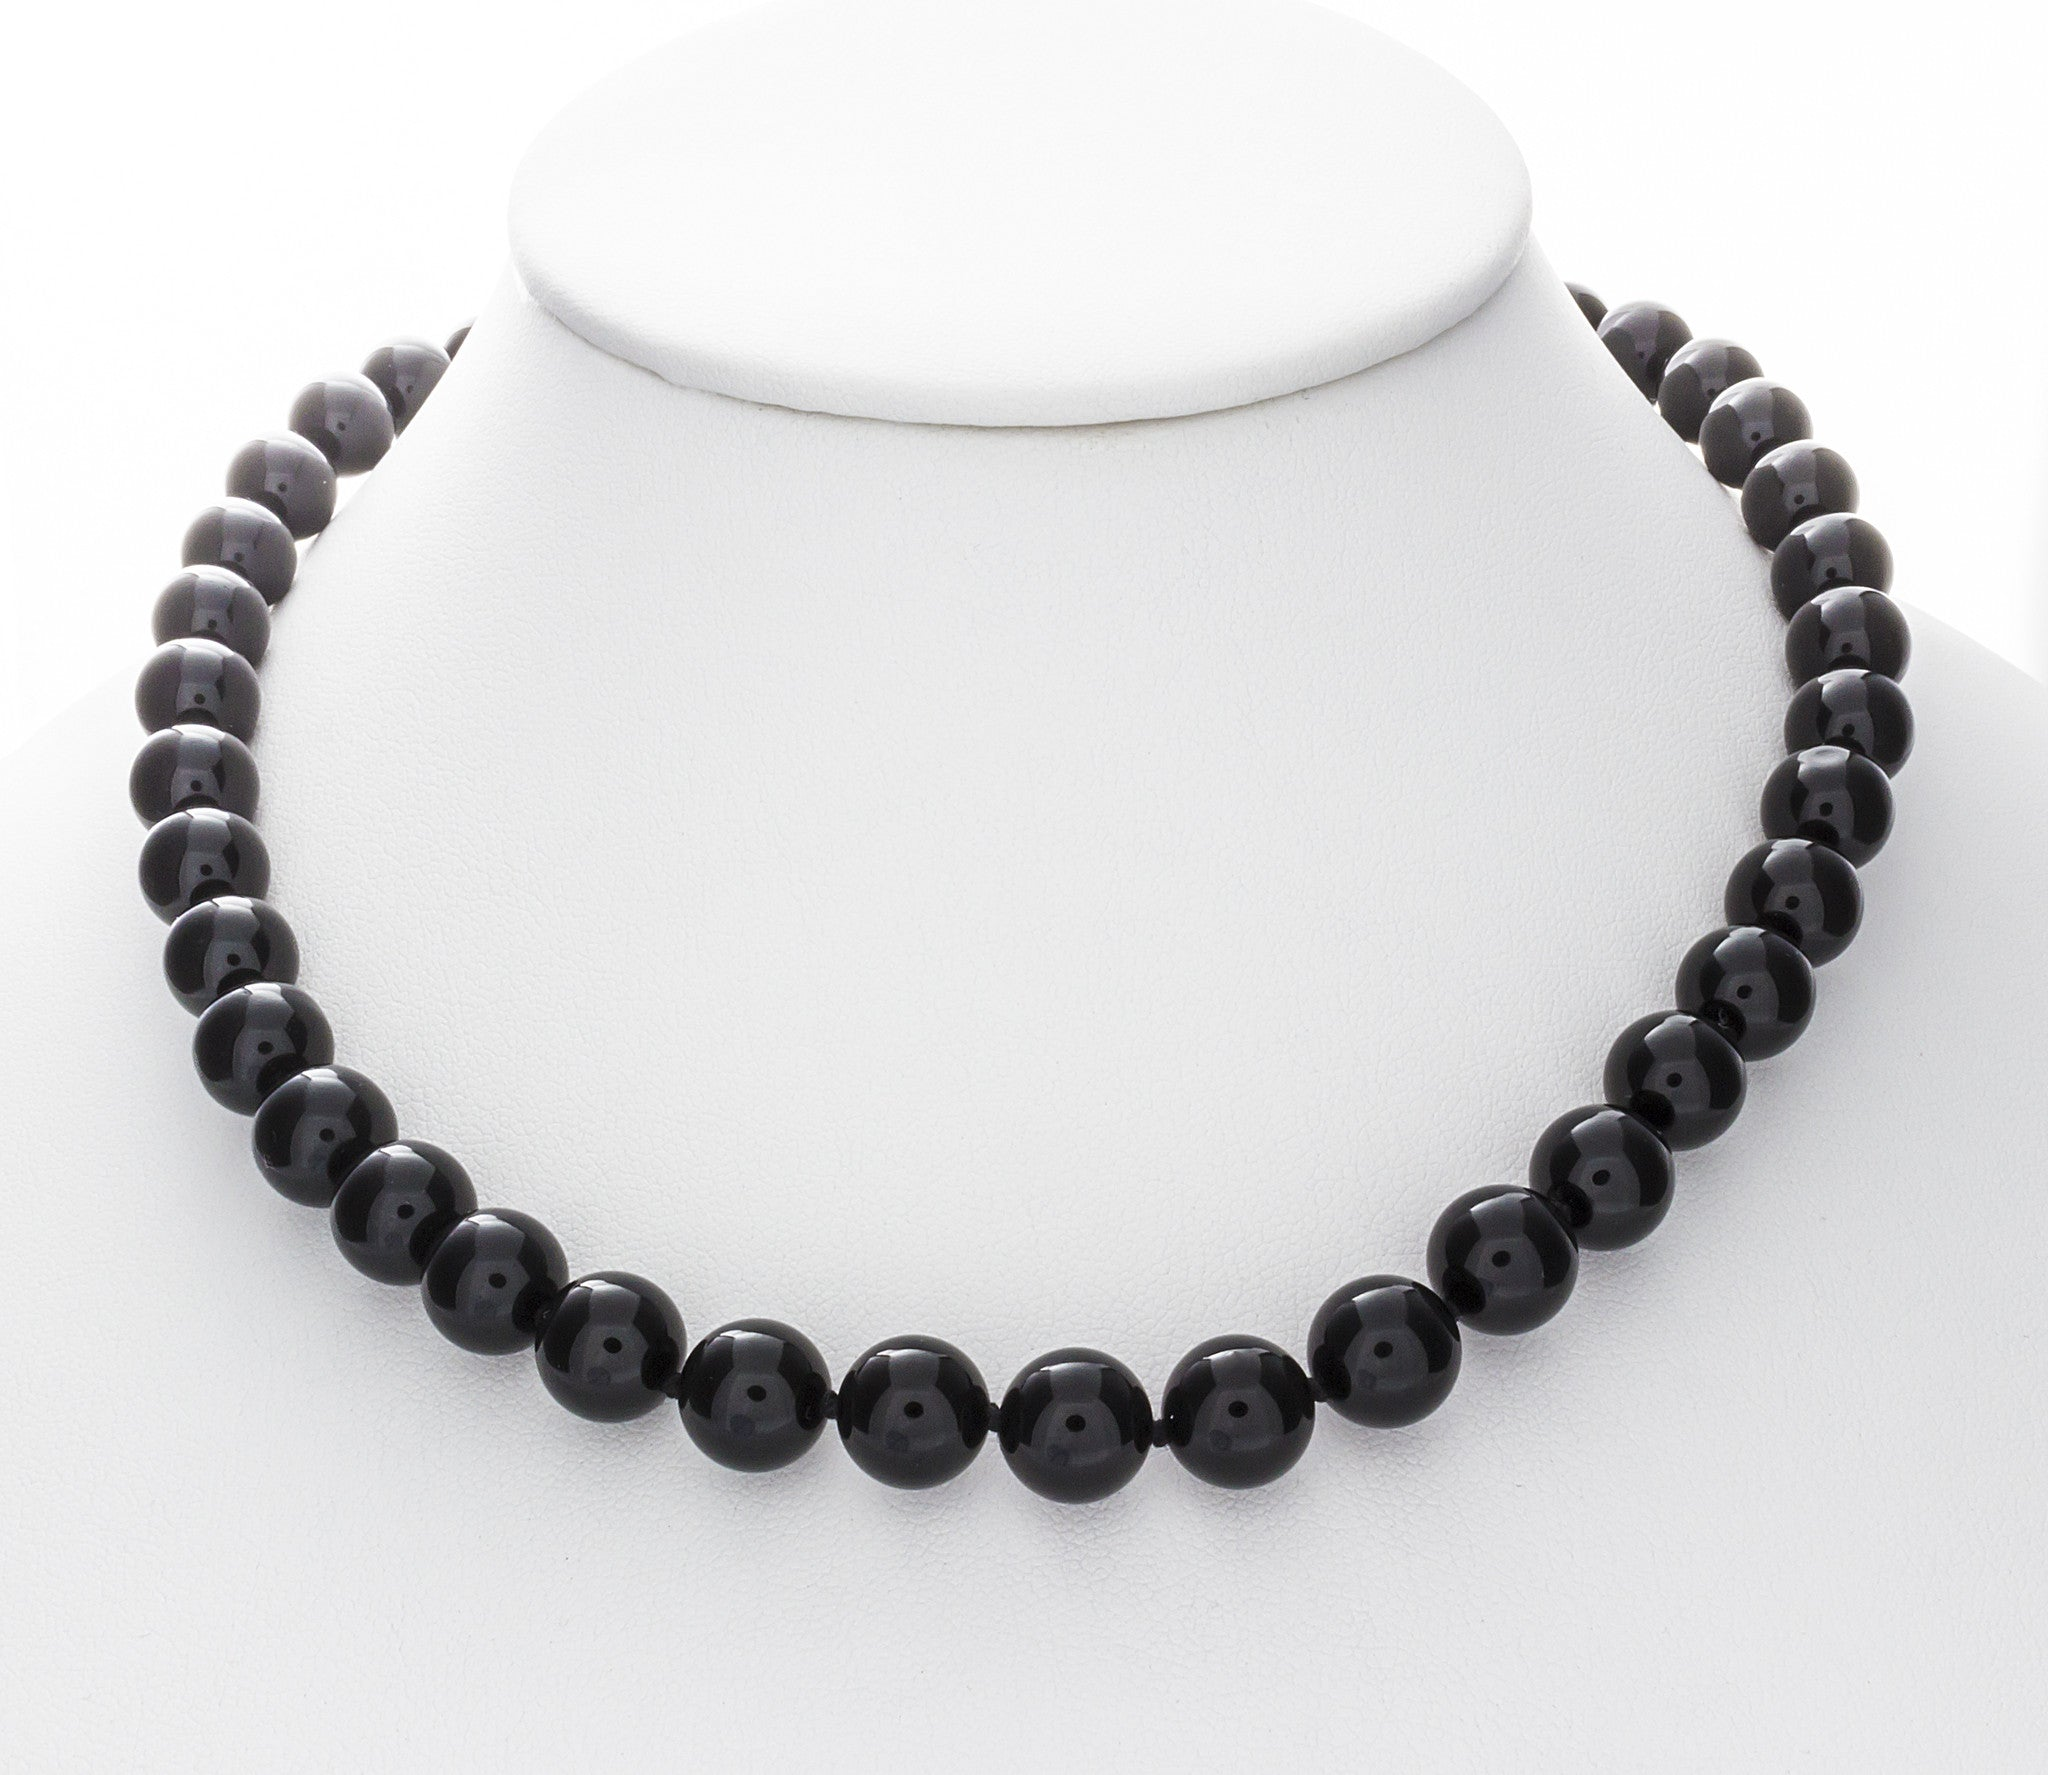 10mm Black Onyx Necklace with 925 Sterling Silver Clasp - Isaac Westman - 2